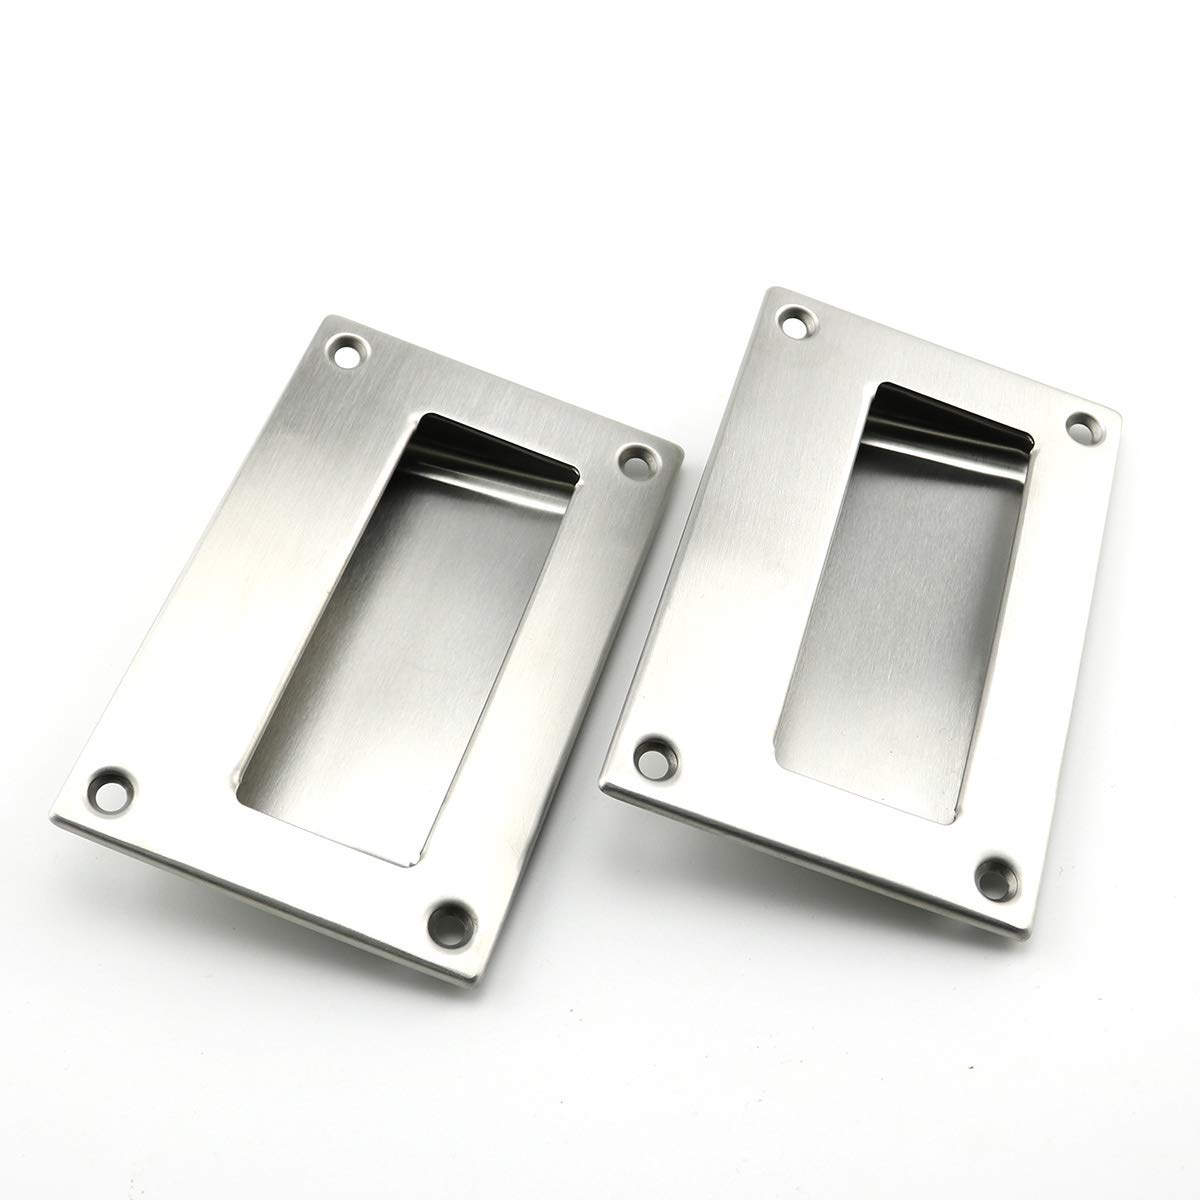 Heyous 2pcs 5x3.2 inch Hidden Recessed Pull Handle Stainless Steel Square Flush Concealed Furniture Handle for Door Drawer Cupboard Cabinet Sliding Door